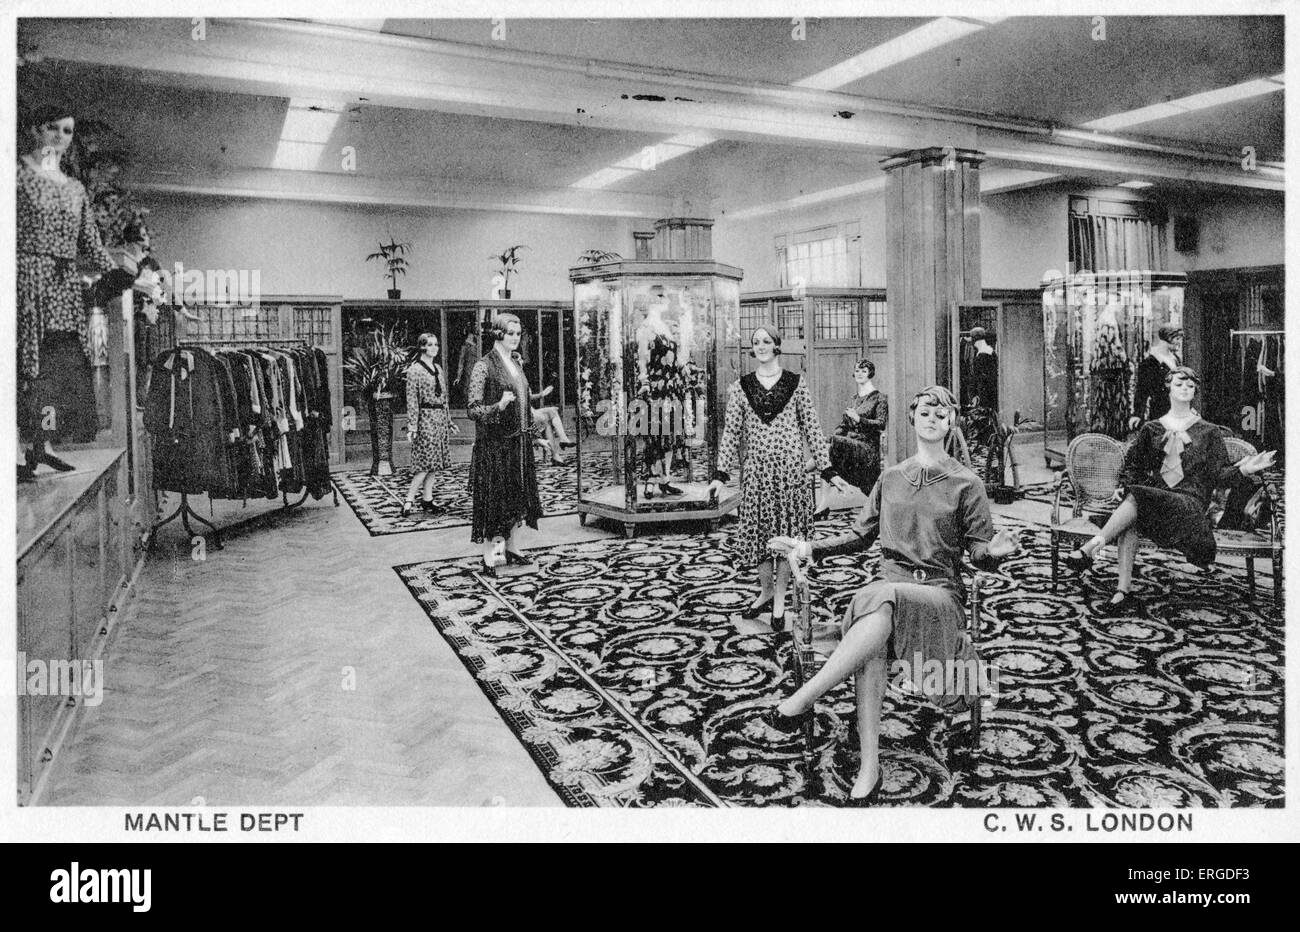 The Mantle Department at CWS, London, c.1933. Also known as the Co-operative Wholesale Society, which later became - Stock Image